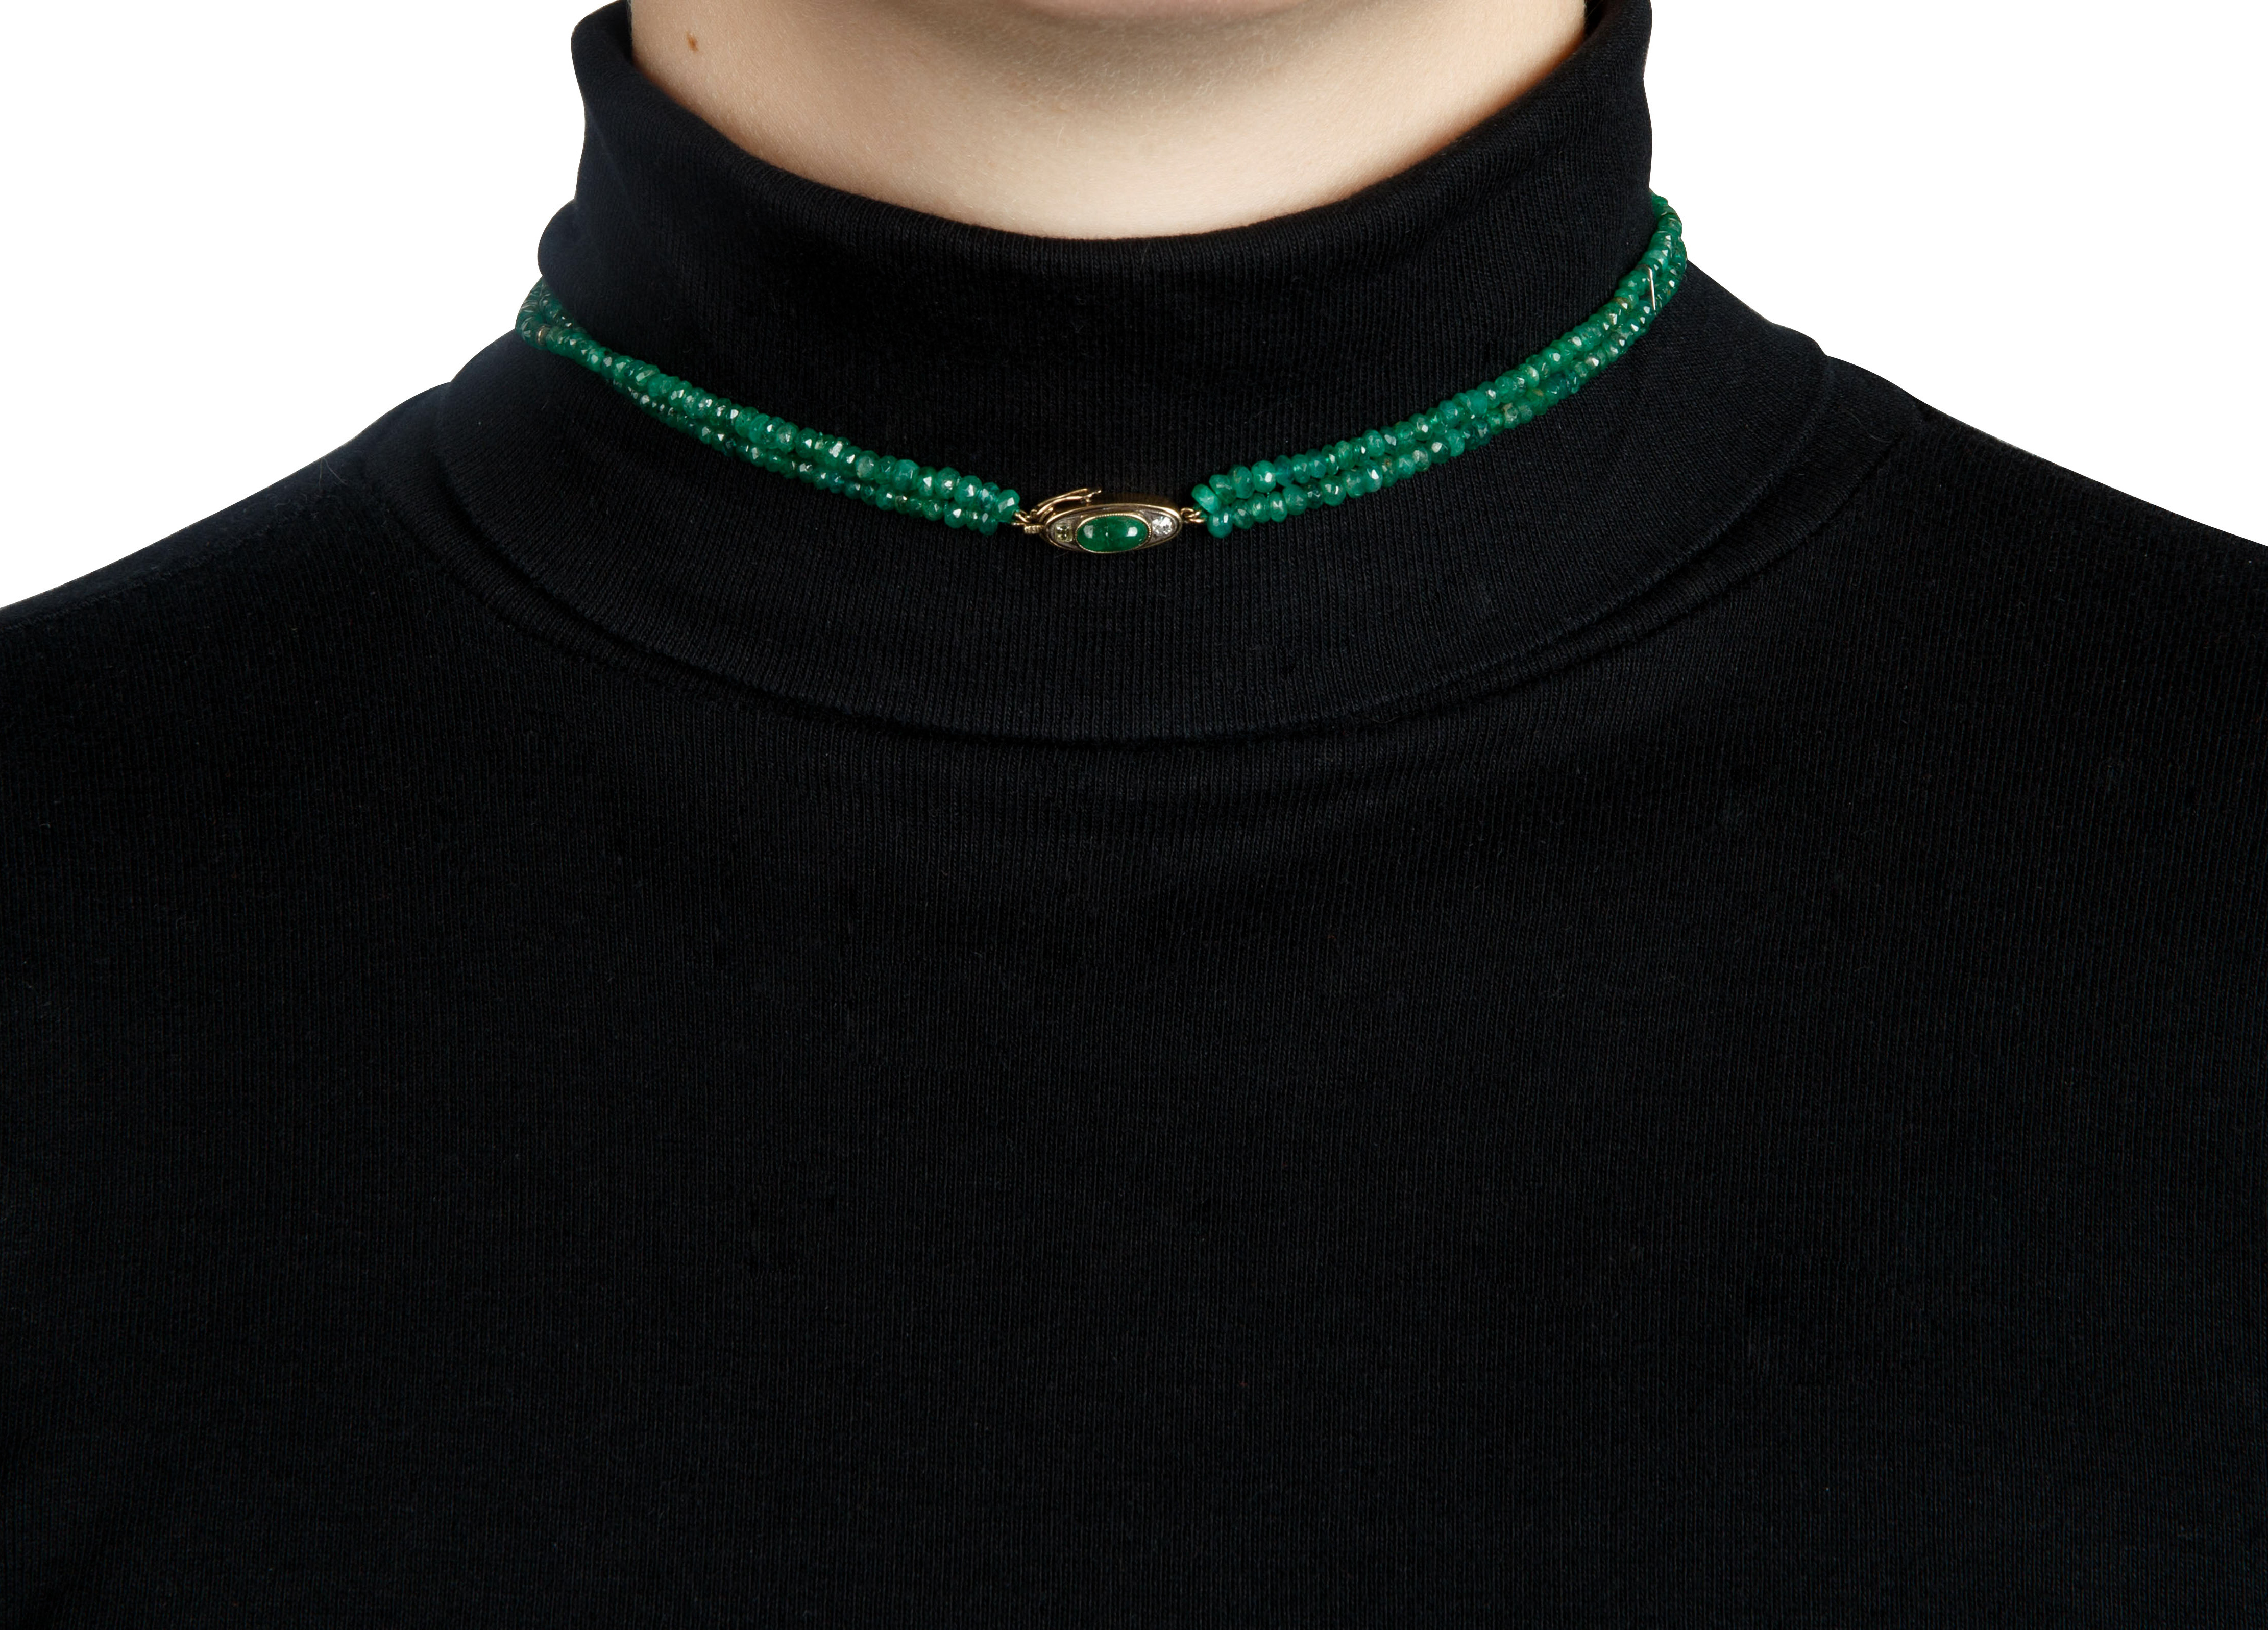 AN EMERALD, DIAMOND AND JADEITE BEADED NECKLACE, LIKELY FRENCH - Image 5 of 5